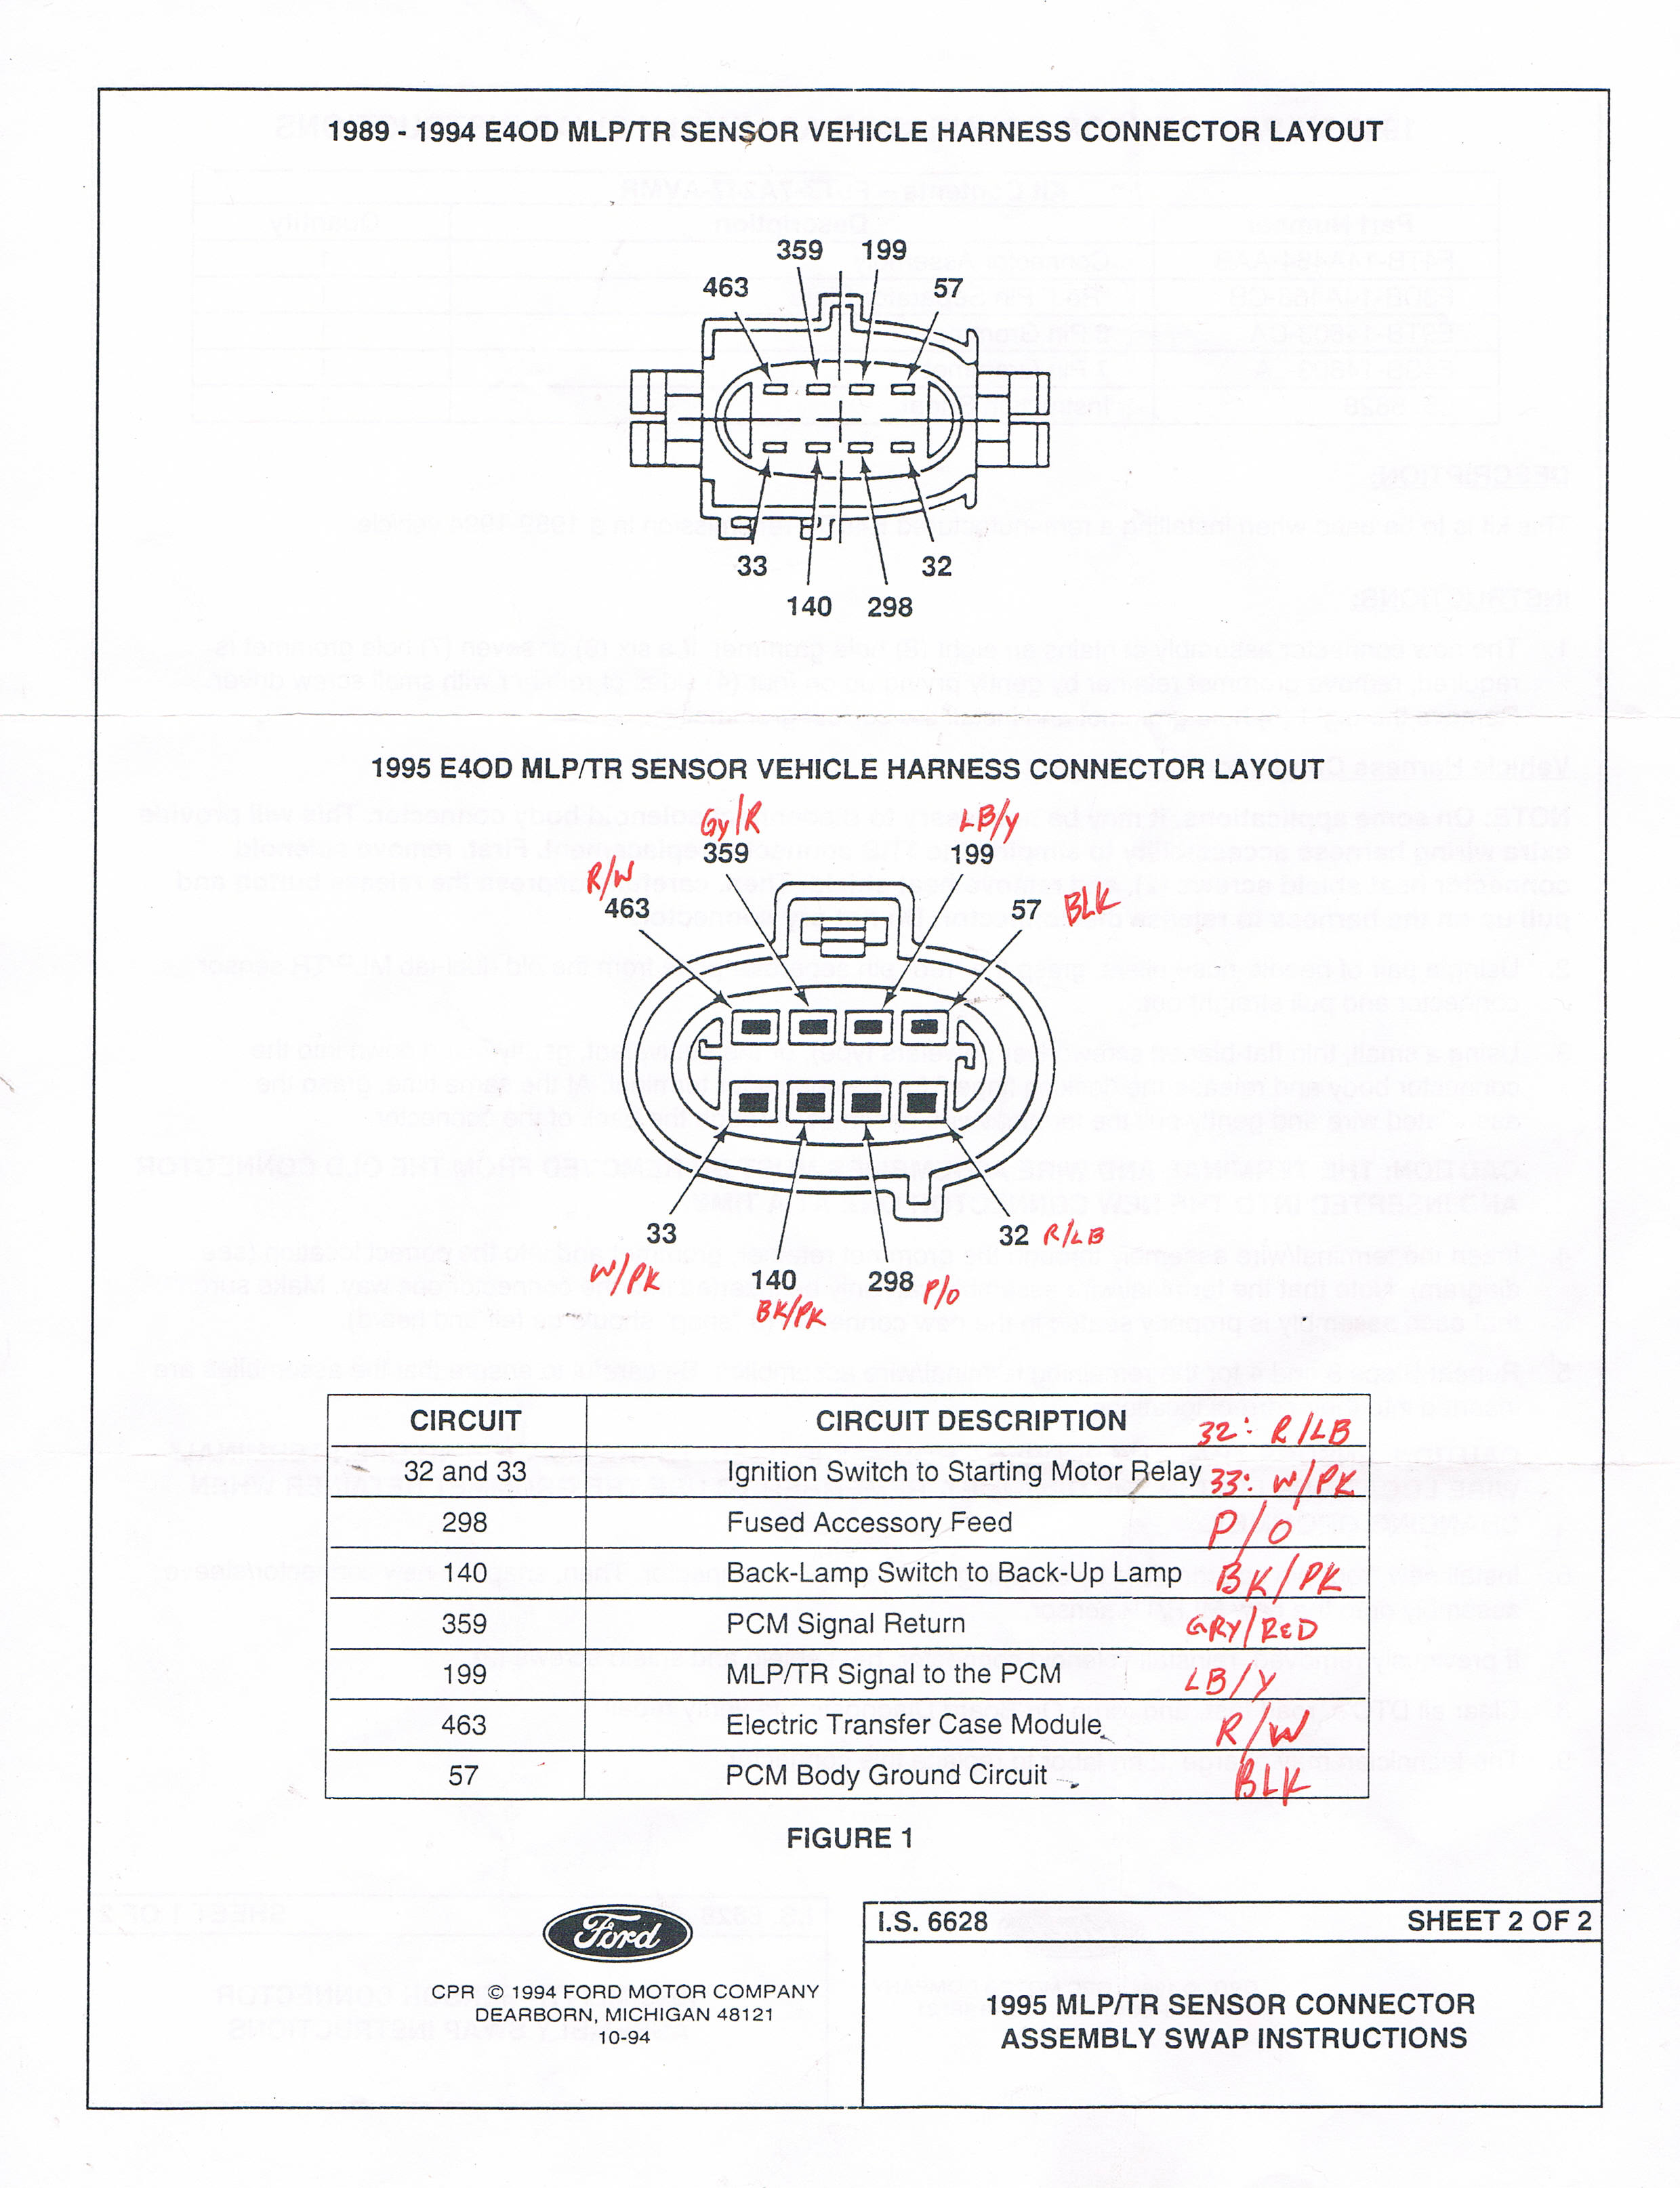 Powertrain Transmission E40d Wiring Diagram Library For Mg Midget Ccf12192012 00000 Connector Wrong Wire Location